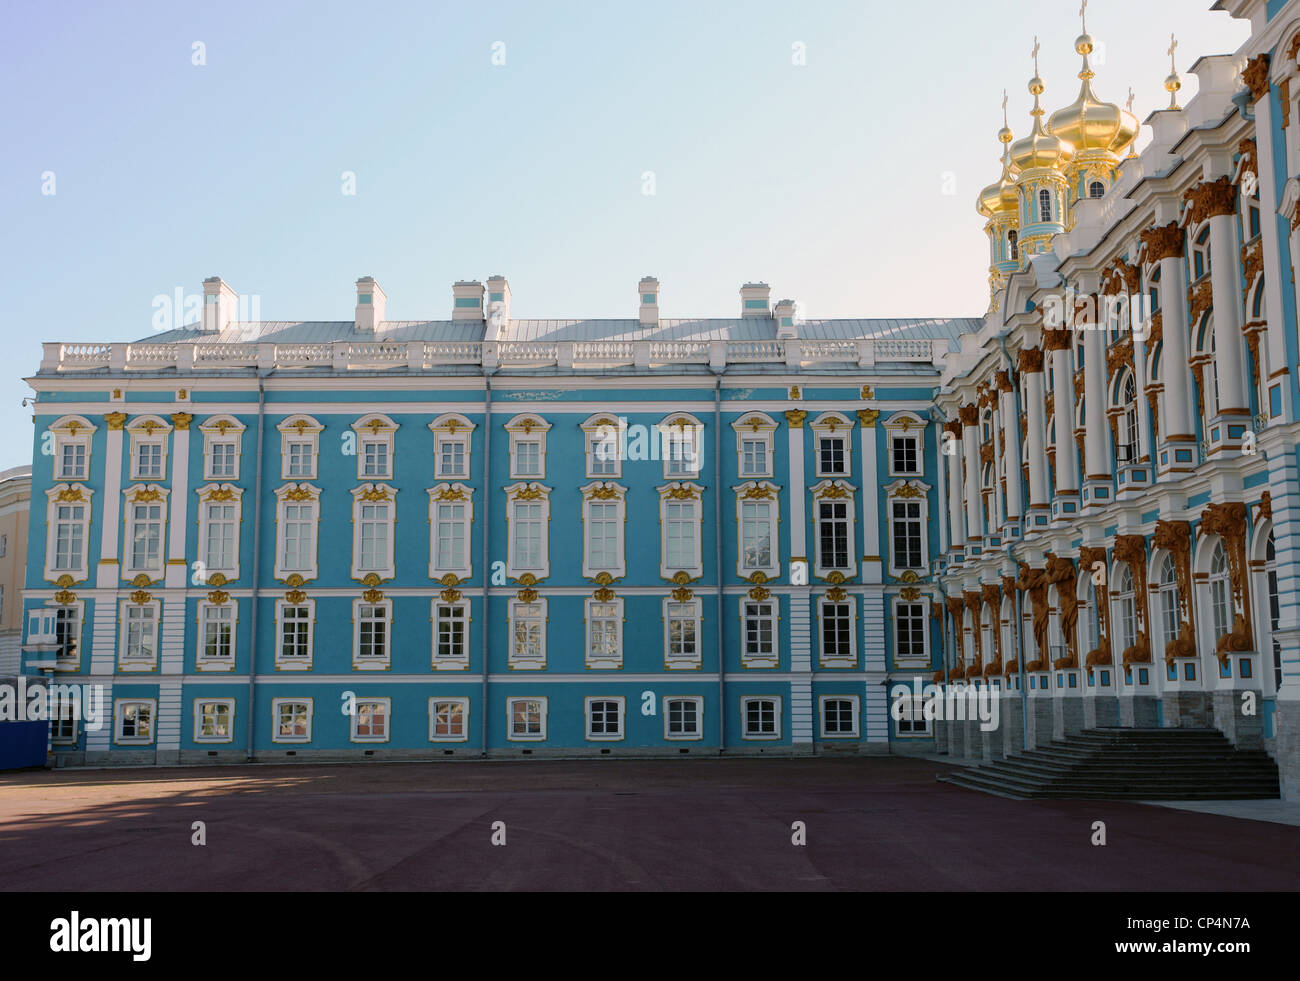 catherine palace stockfotos catherine palace bilder alamy. Black Bedroom Furniture Sets. Home Design Ideas